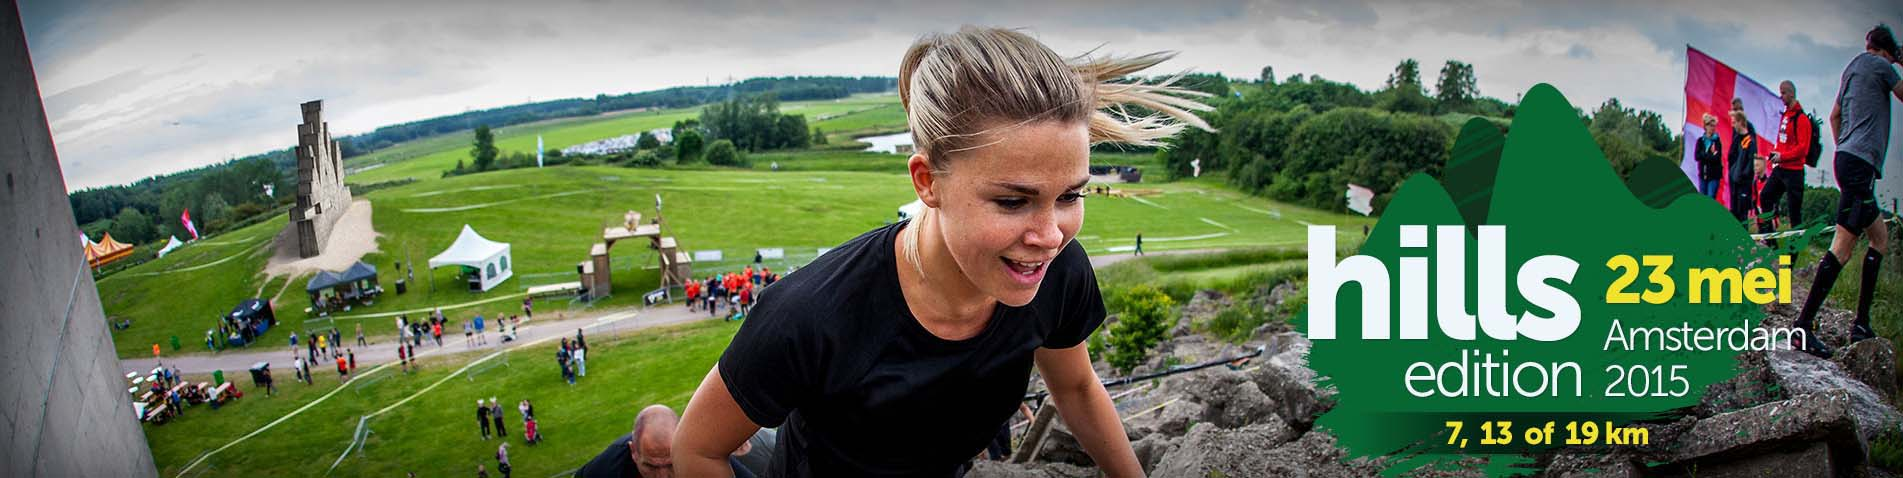 obstacle-run-hills-edition-nl